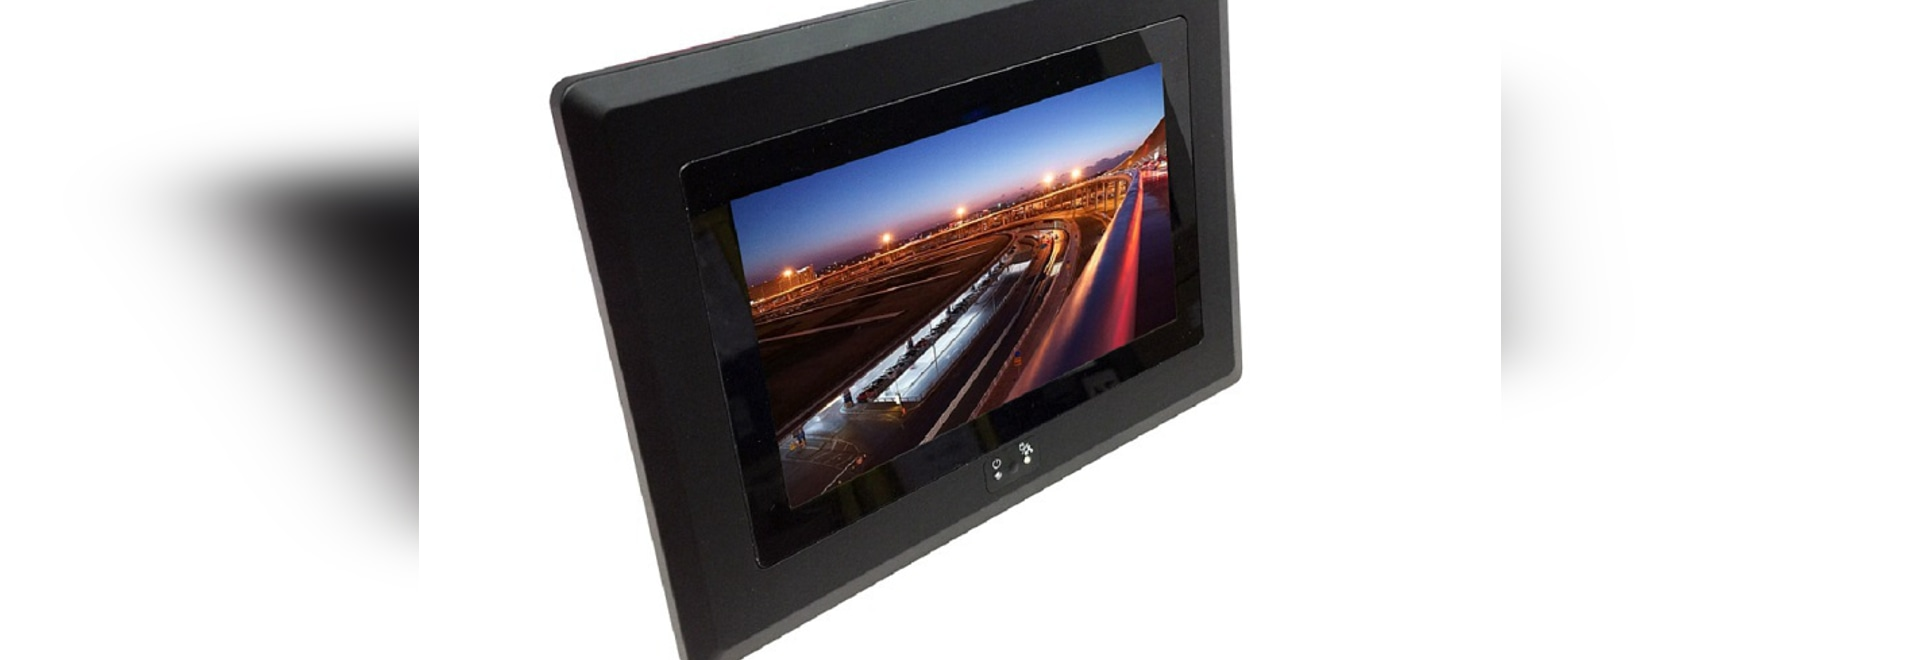 "SUPER-7"" 1024 x 600 /Wide Range DC-IN, Bezel-free Panel PC"